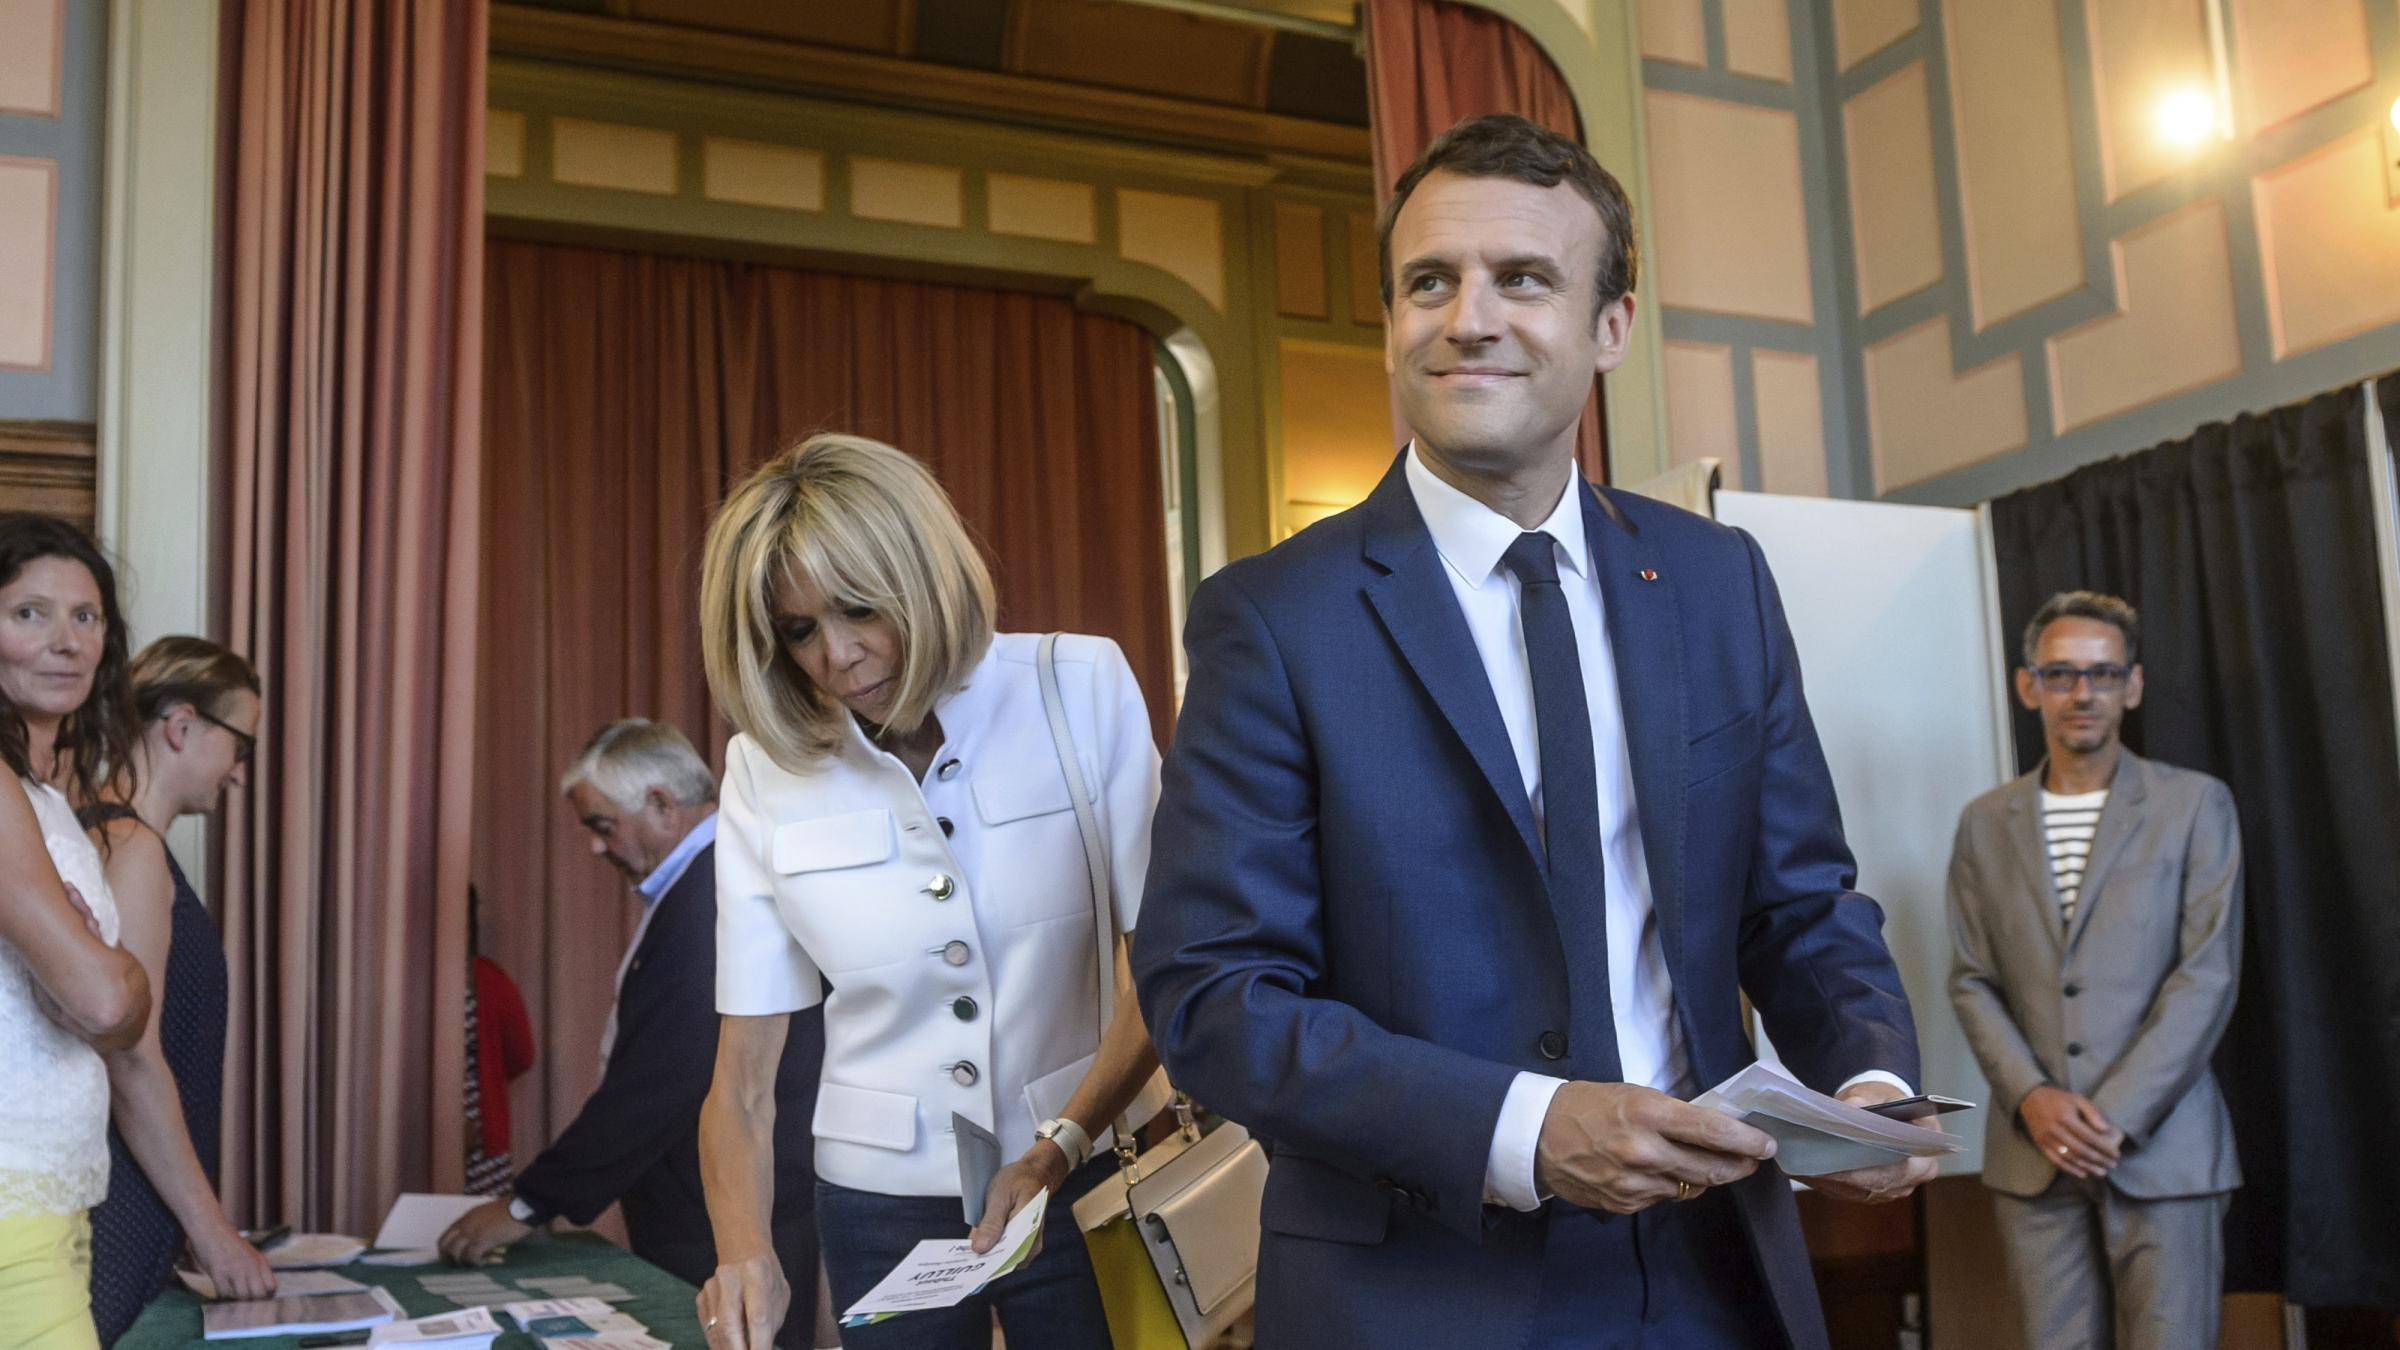 Macron's New Party Set for Landslide in French Parliament Election